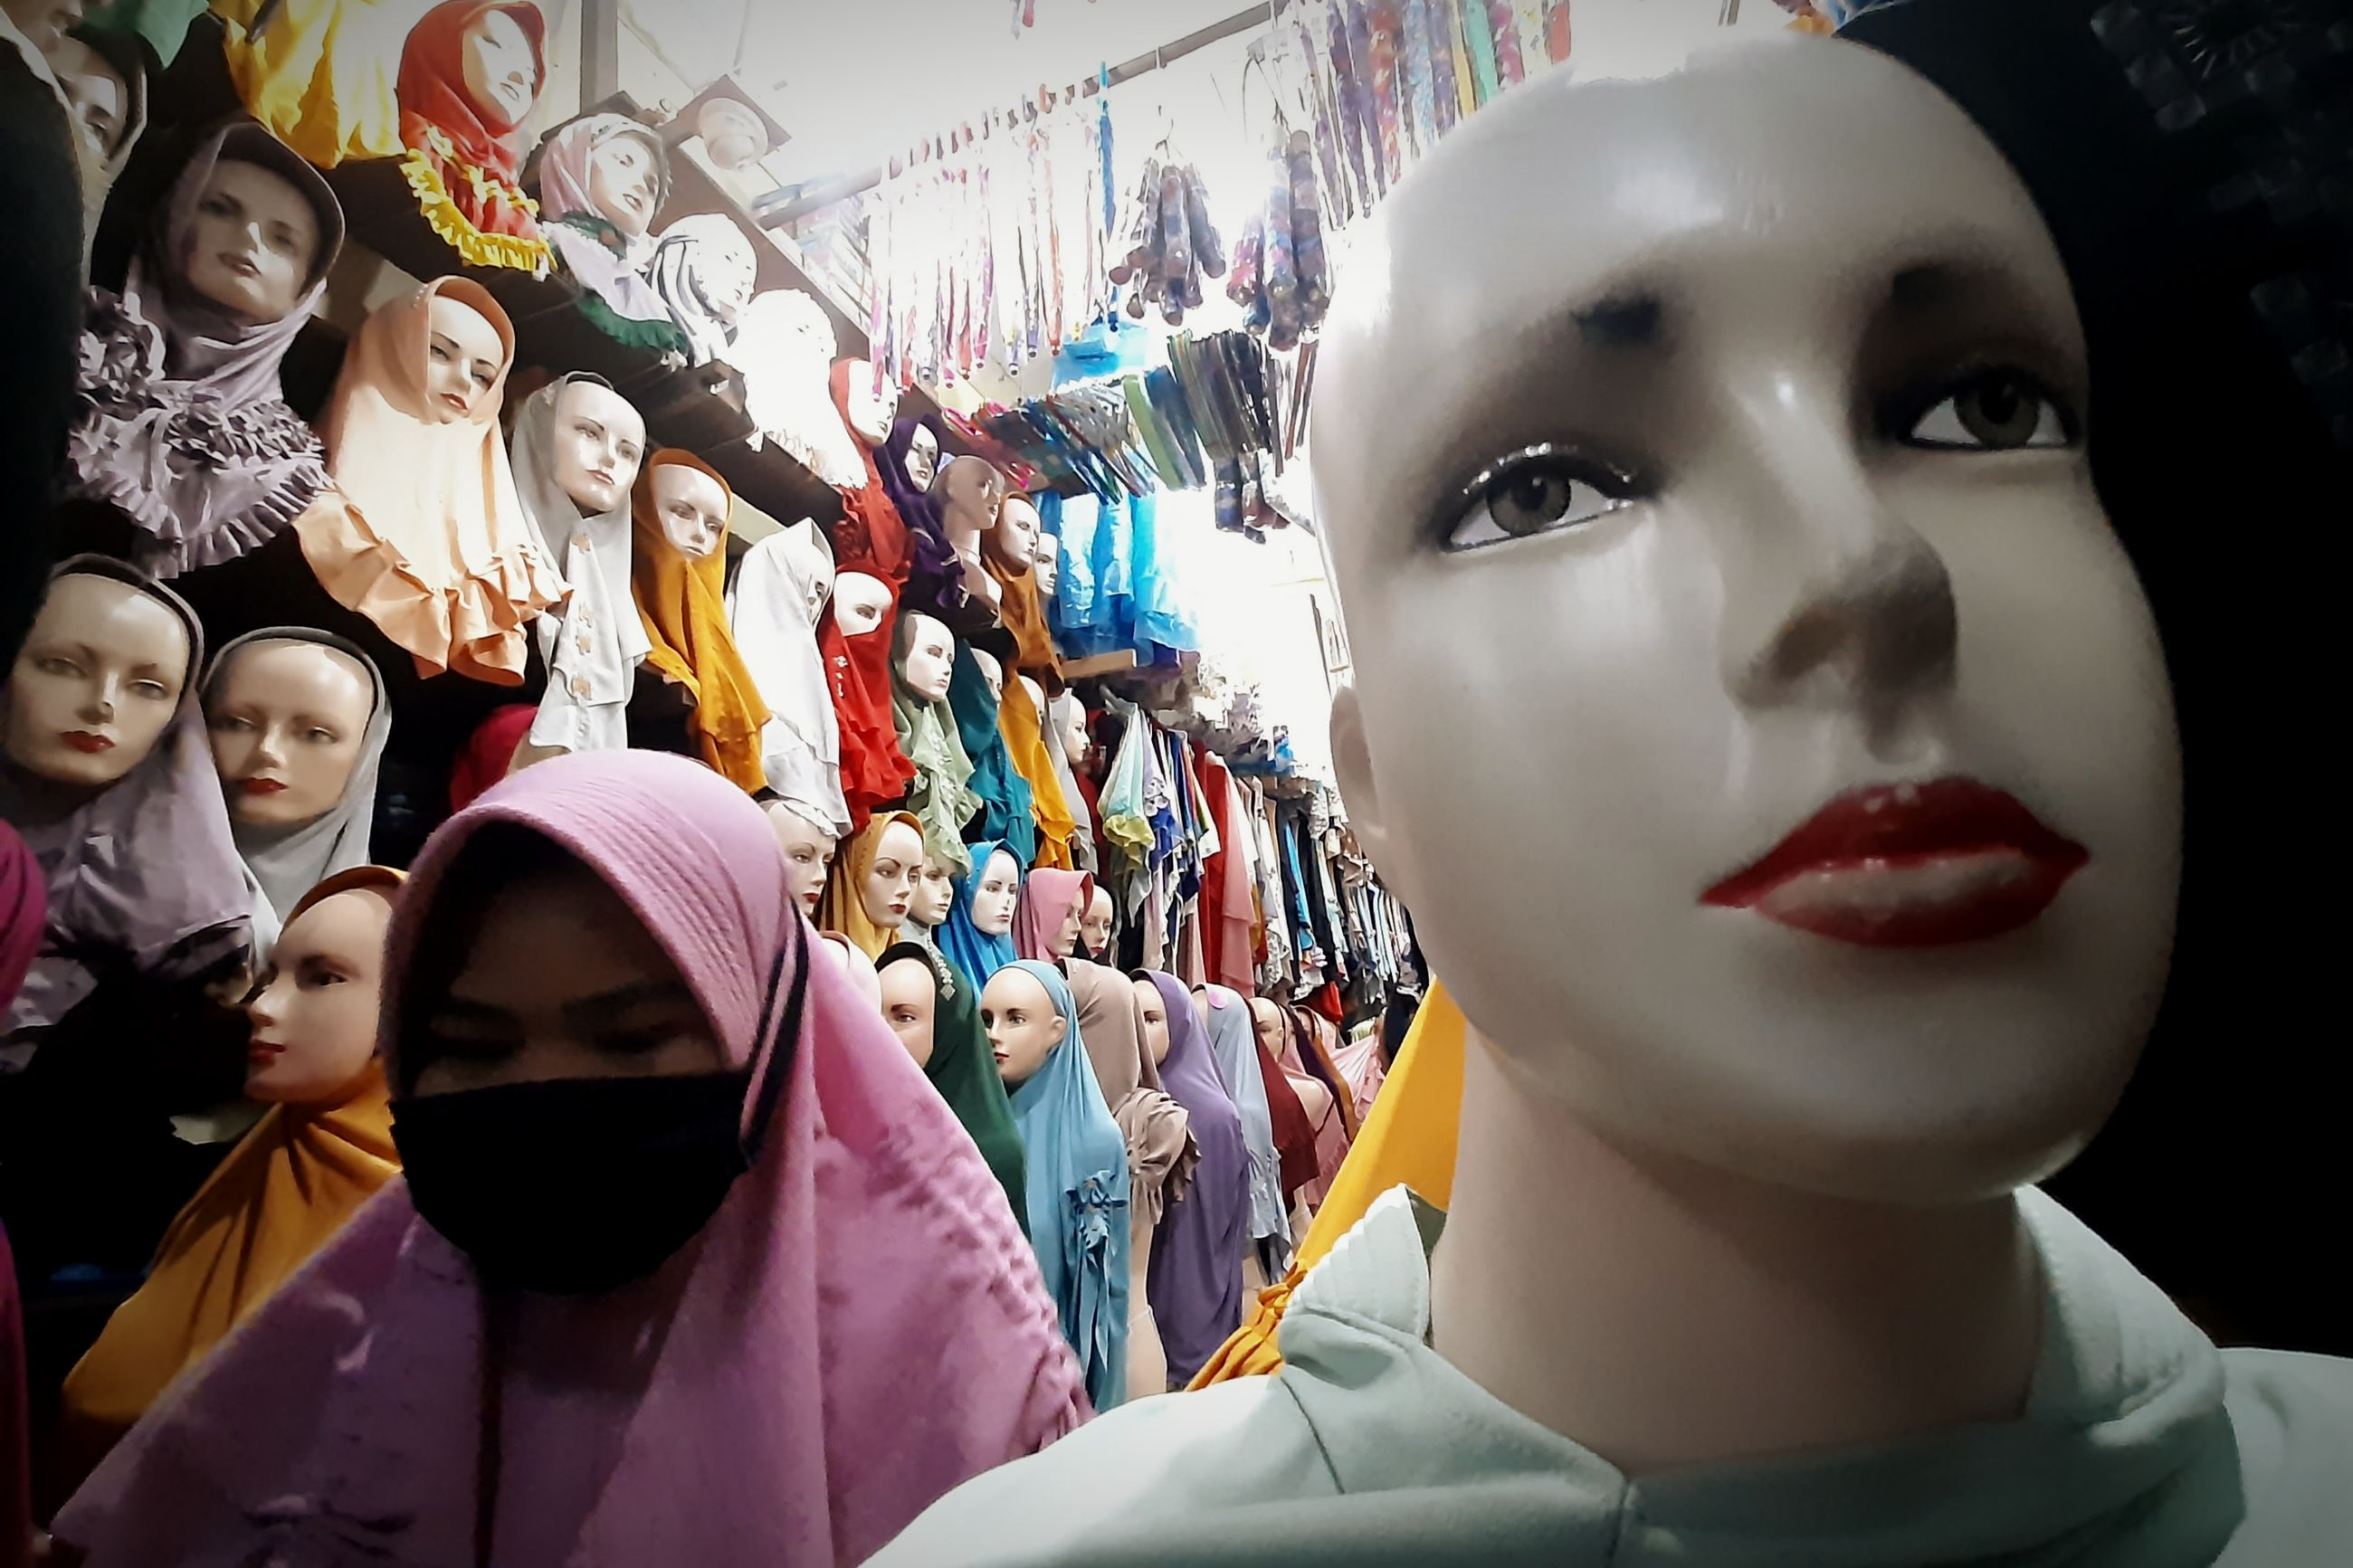 human representation, mannequin, store, retail, representation, fashion, retail display, shopping, clothing, indoors, human face, adult, women, arts culture and entertainment, doll, for sale, female, clothing store, male likeness